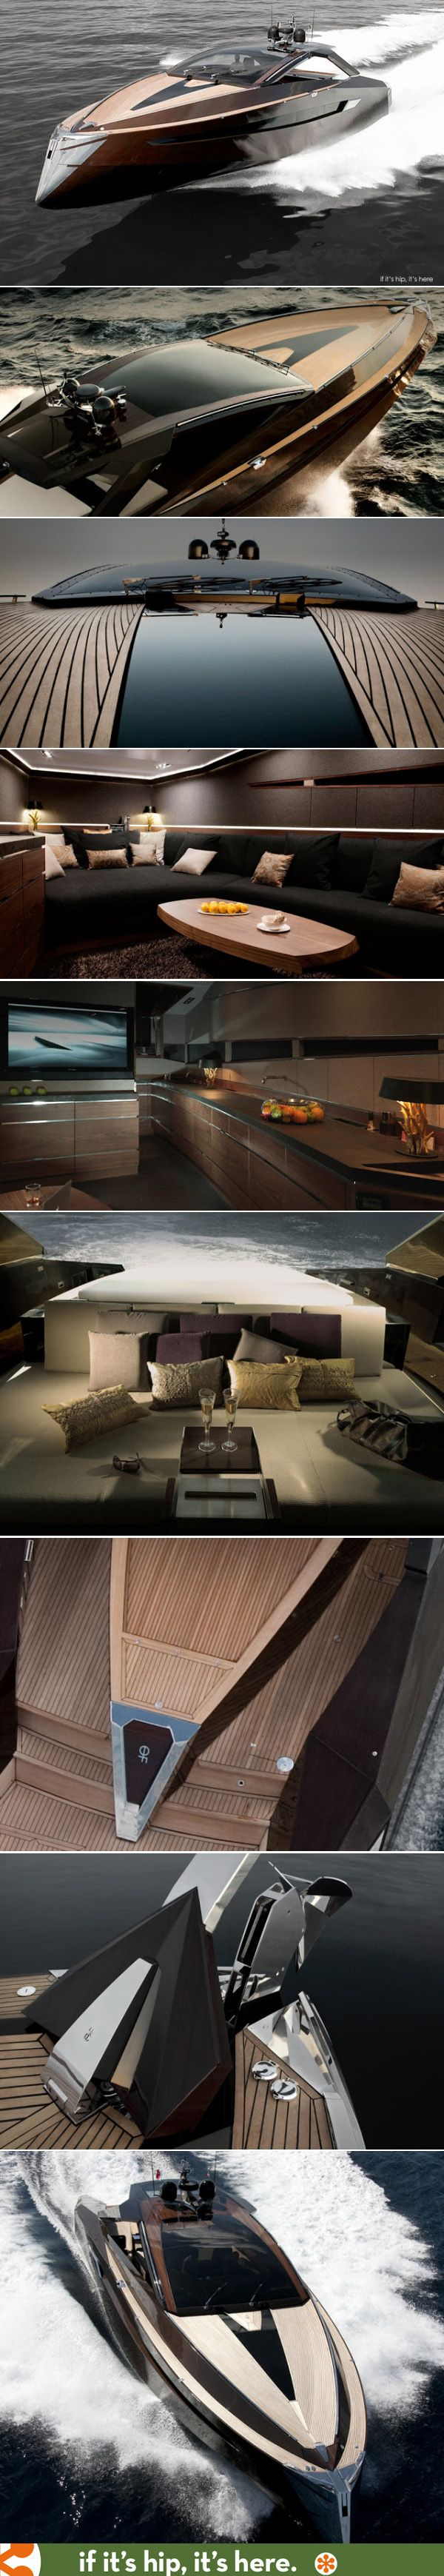 With its Rolls Royce water jets and exotic woods, the Hedonist Yacht is one of the most beautiful I've ever seen.